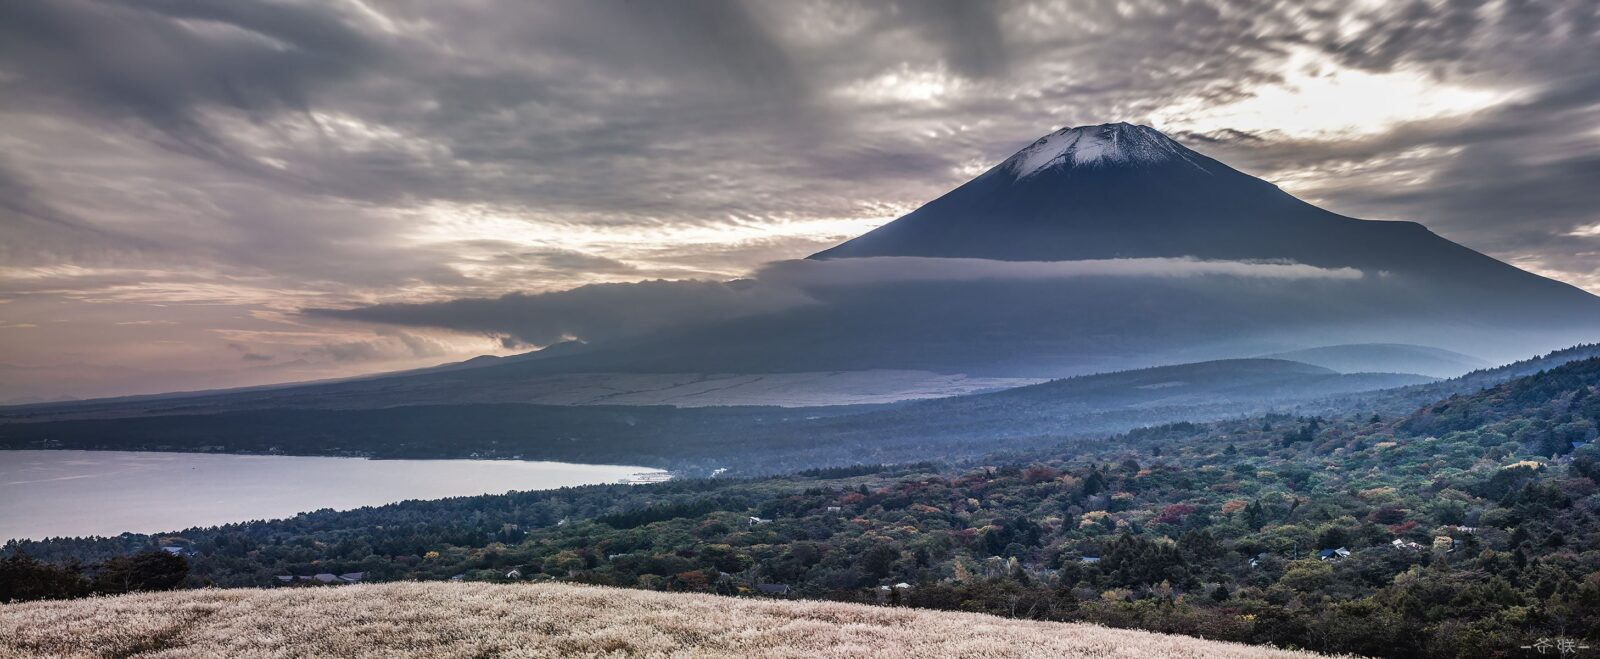 Japan mount Fuji HD 1080p wallpaper